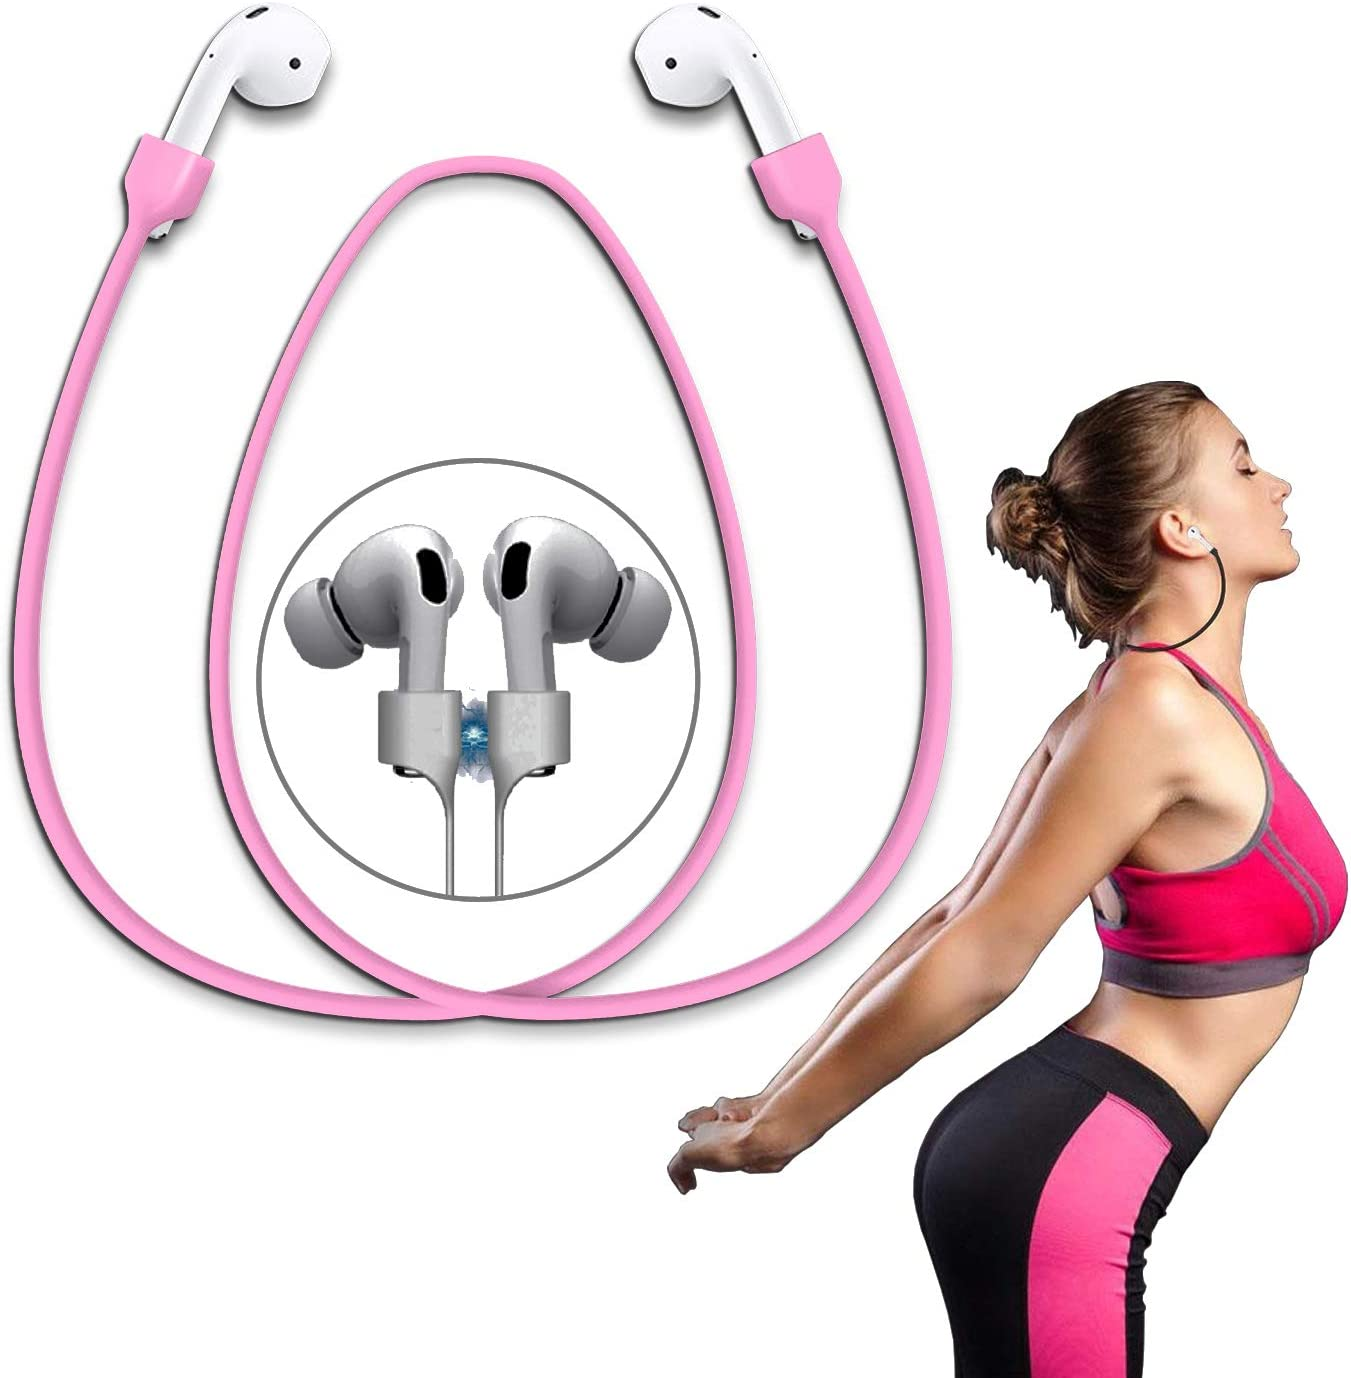 Airpods Strap Magnetic Super Strong Cord Anti-Lost Leash Sports String - Accessories for Airpods PRO/2/1(Pink)